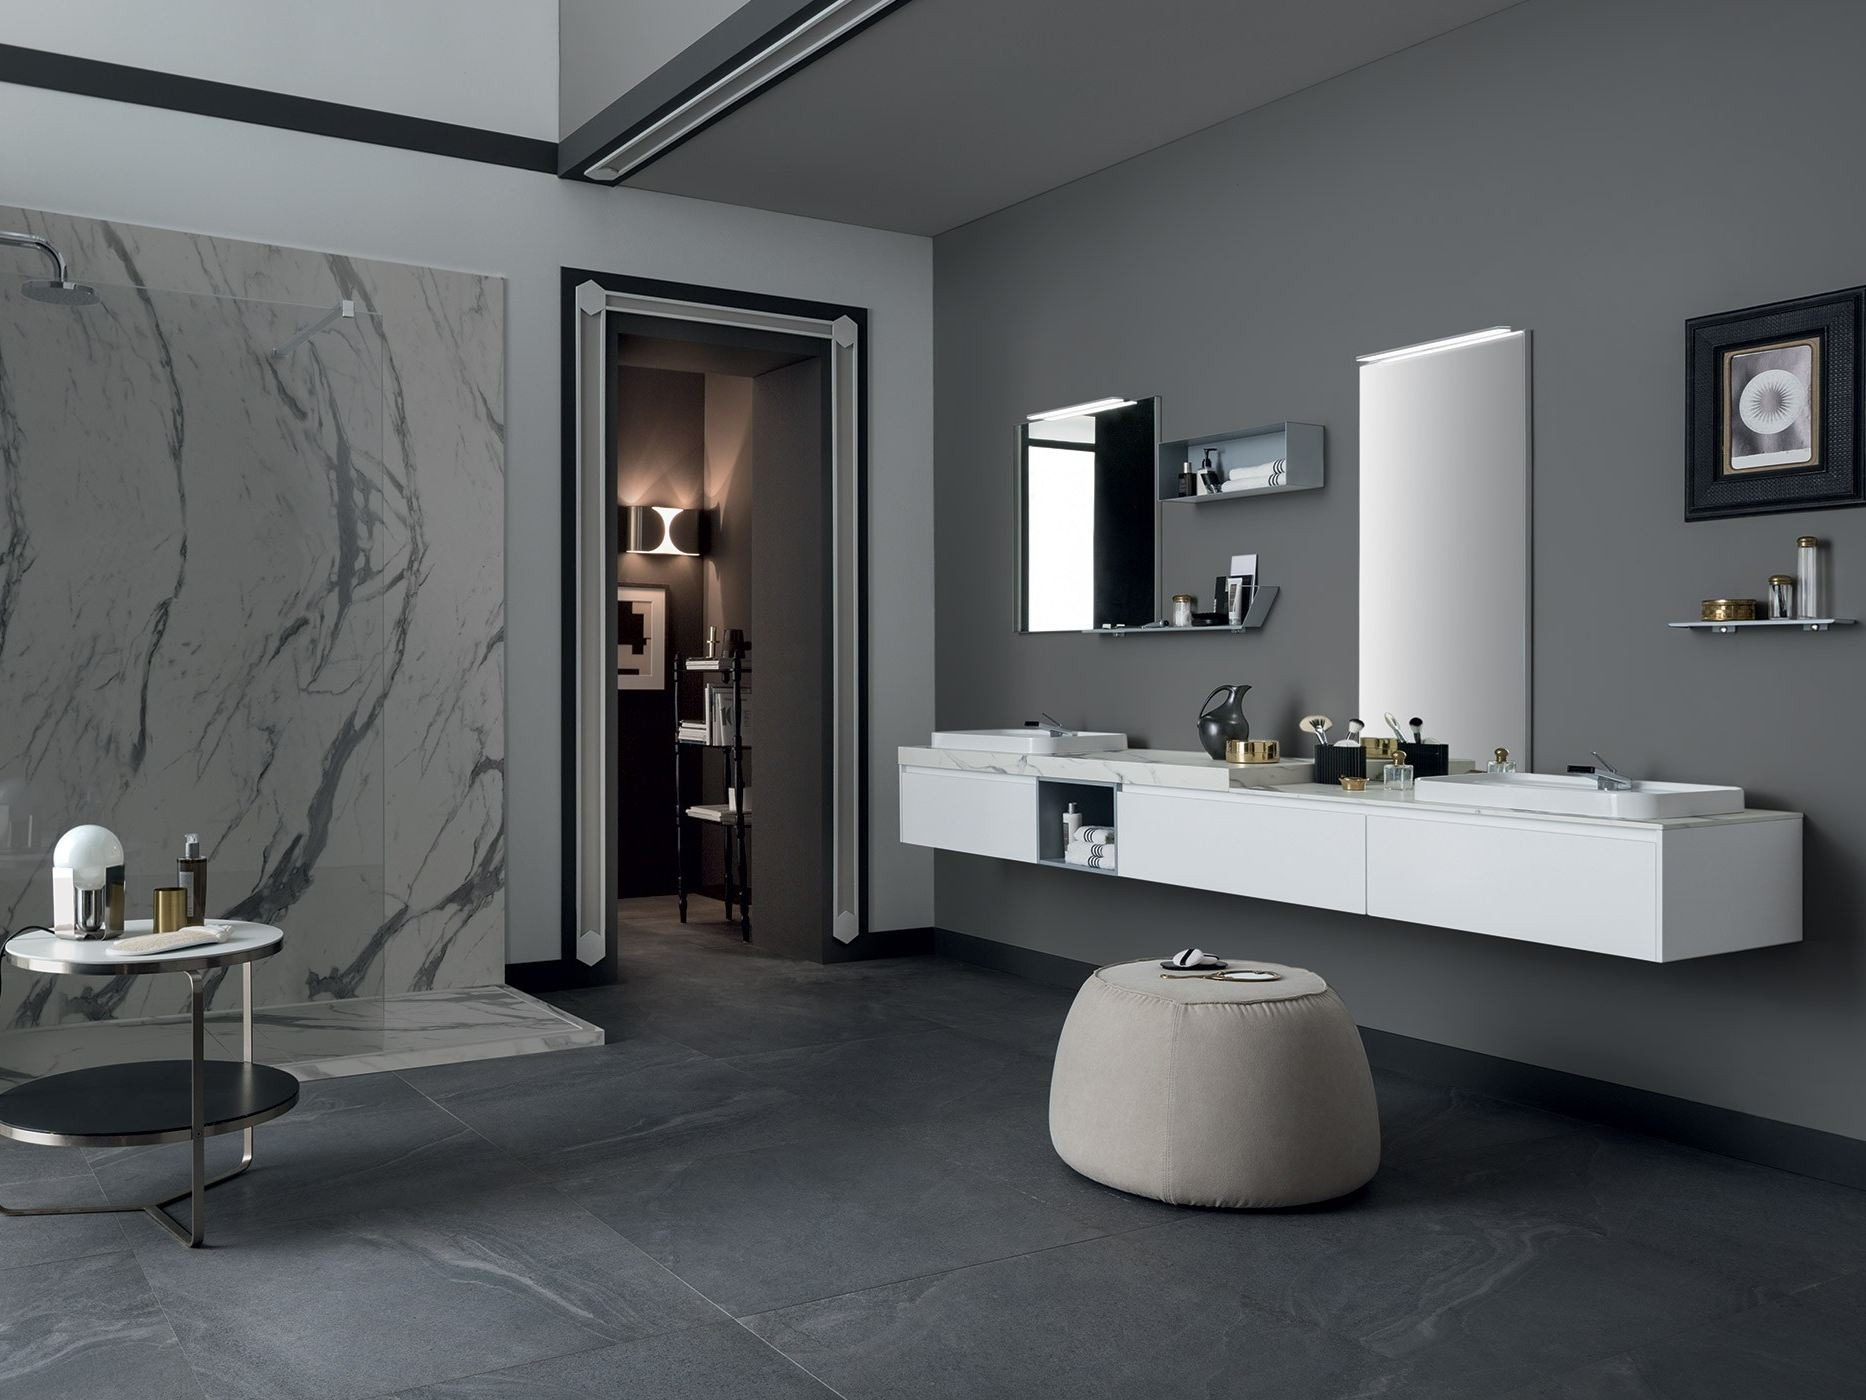 Mobile bagno in stile moderno 80 3 0 collection by rab for Bagno padronale moderno